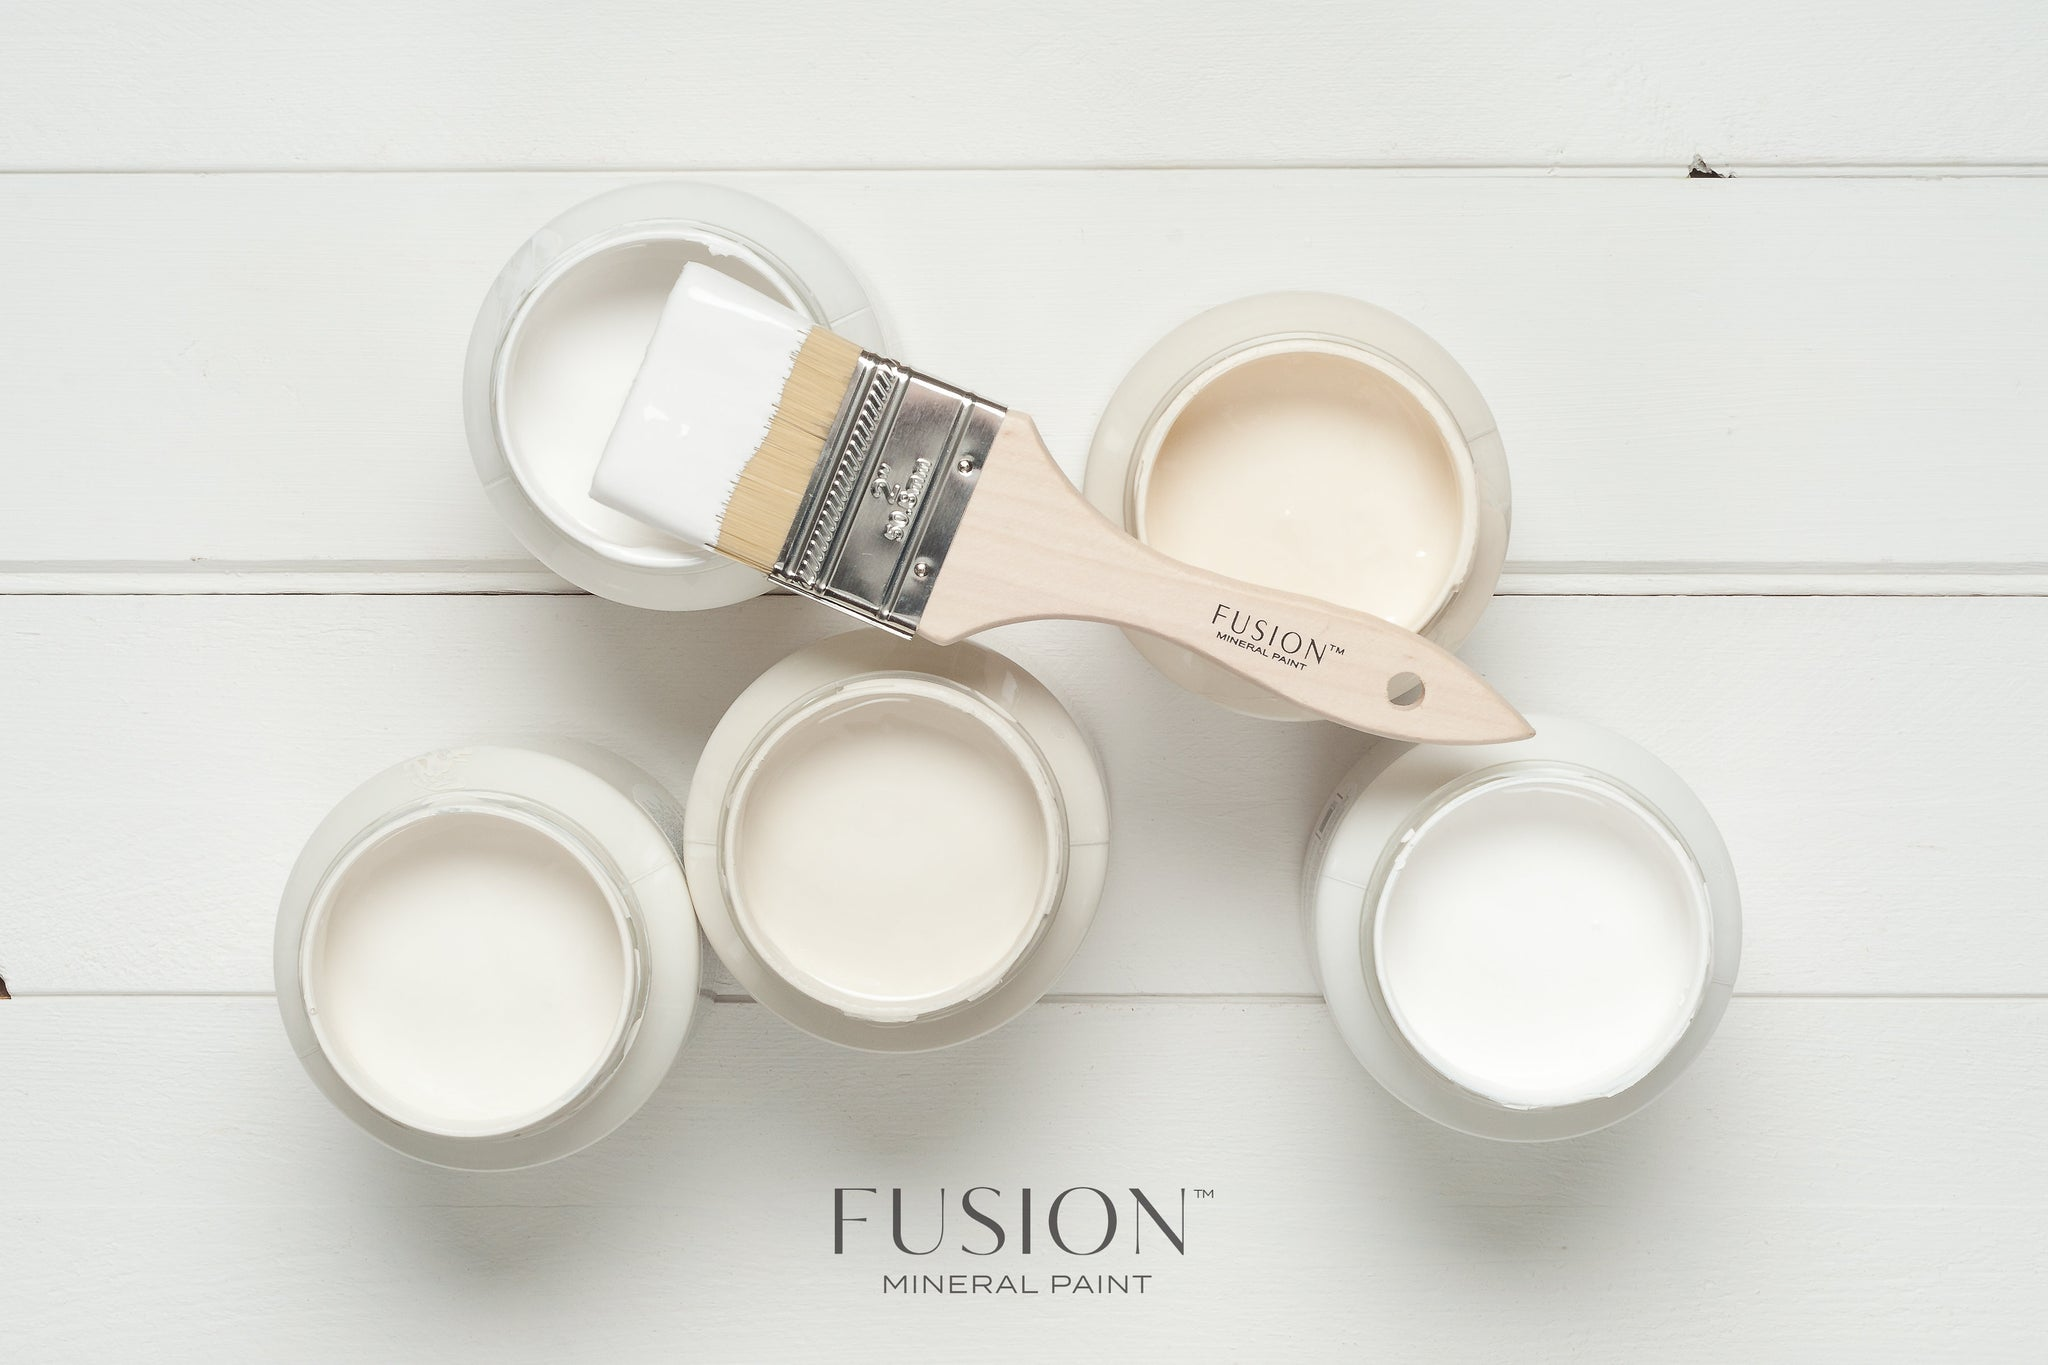 Fusion™ Mineral Paint 101 Workshop (January 11)